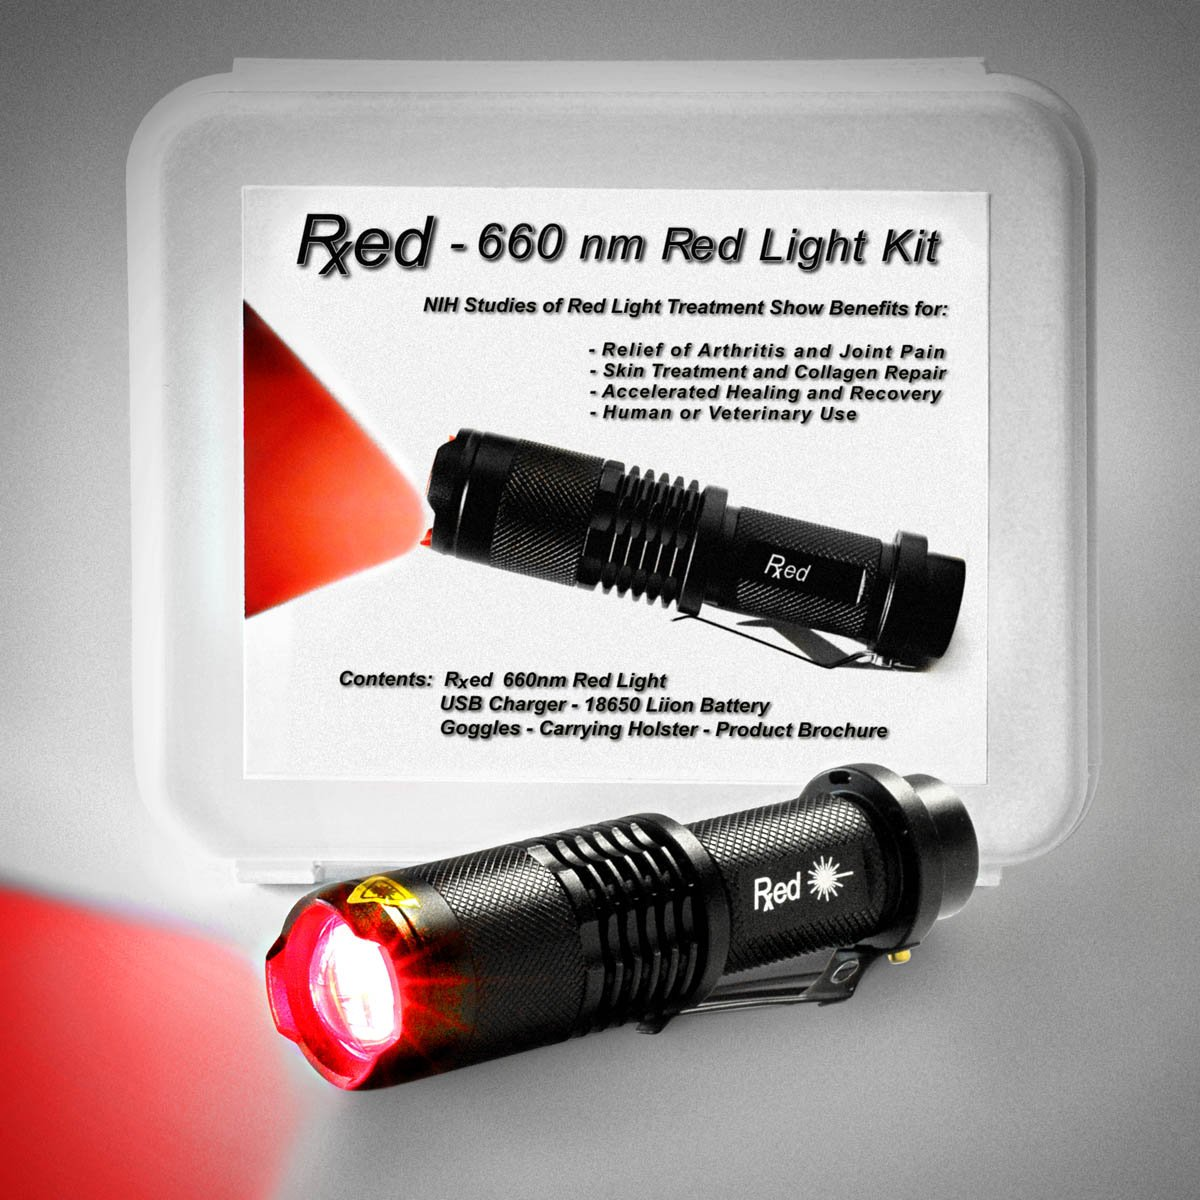 RxED - Red Light Therapy Kit  Based on NIH Studies Showing Relief of Joint Pain, Swelling, Improved Skin Texture and Facilitated Healing of Injuries